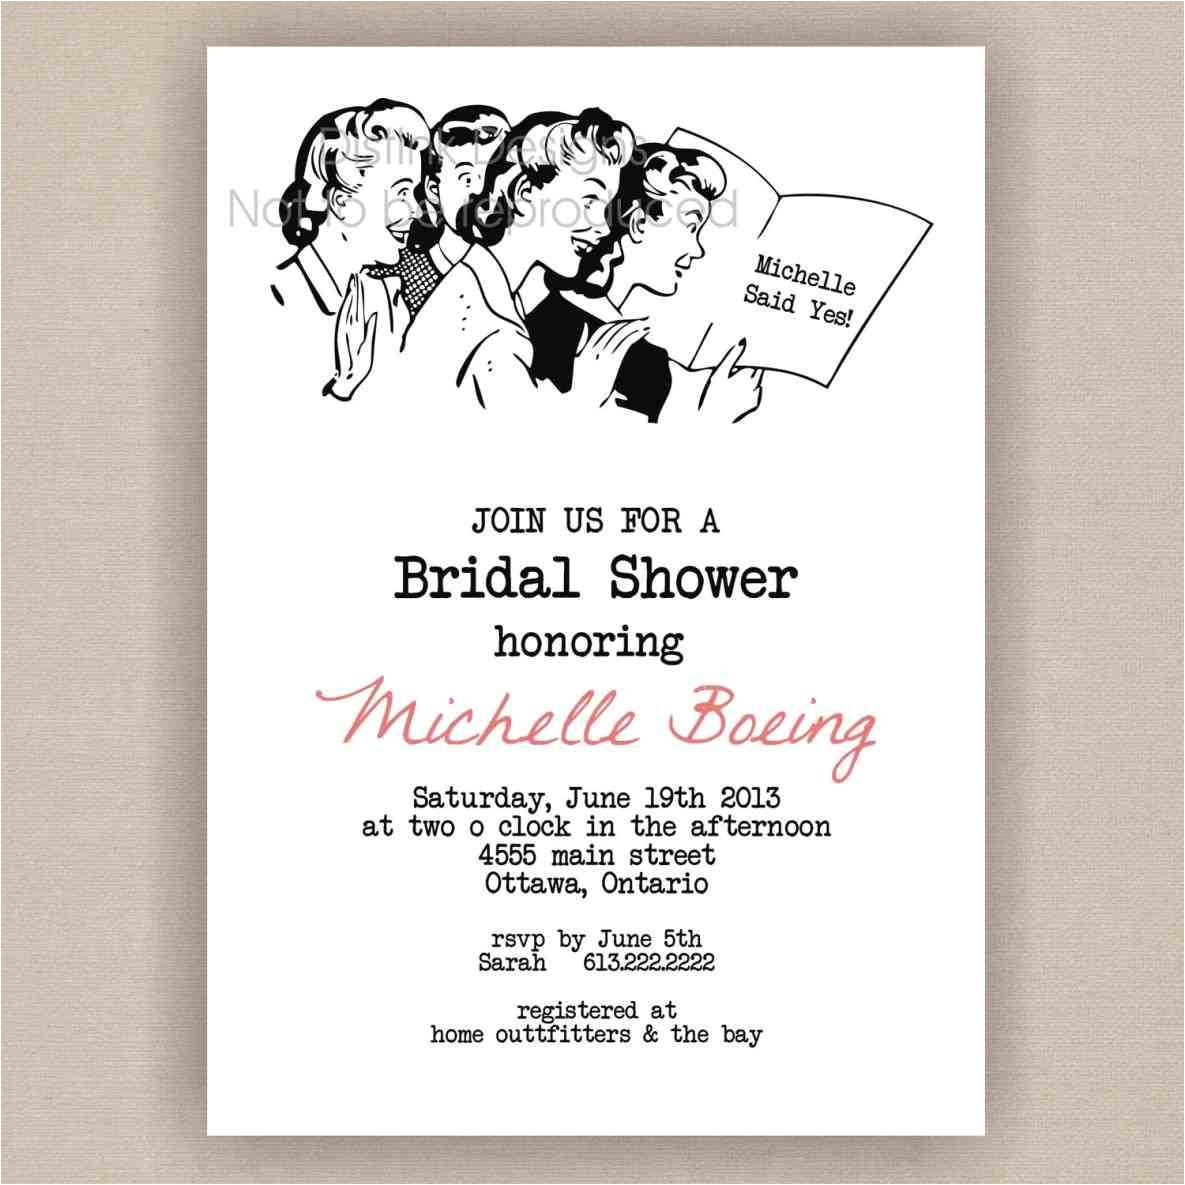 and jill wedding shower invitations bridal dancemomsinfo free invitation wording templates free jack and jill wedding shower invitations bridal invitation wording templates